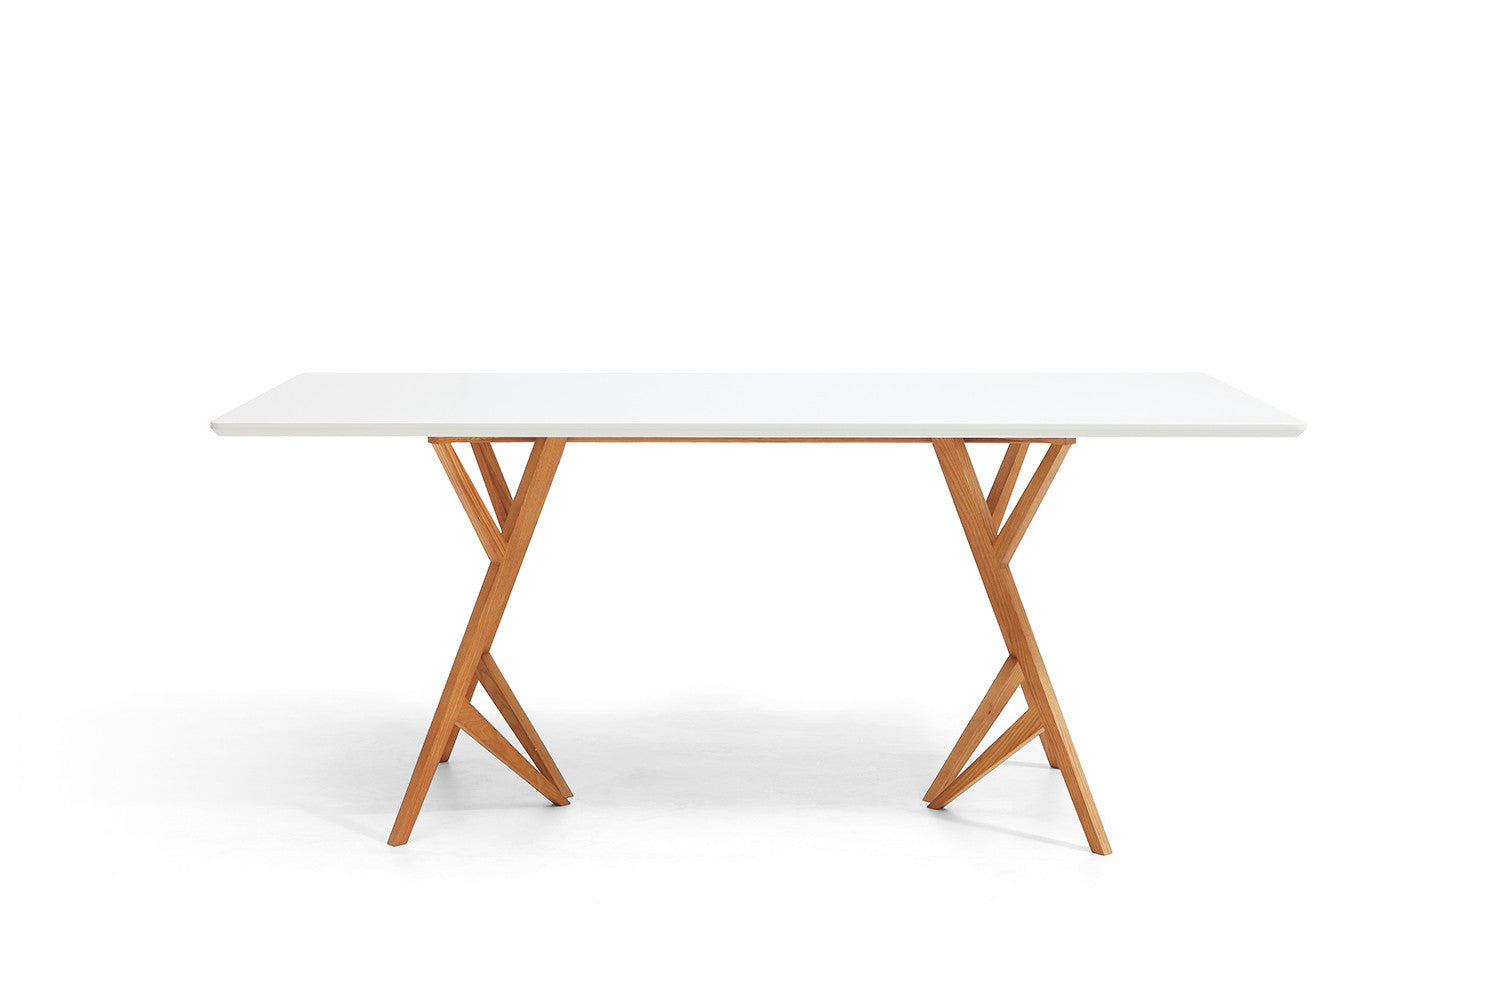 Table de salle manger design scandinave vispa dewarens for Table salle a manger bois design